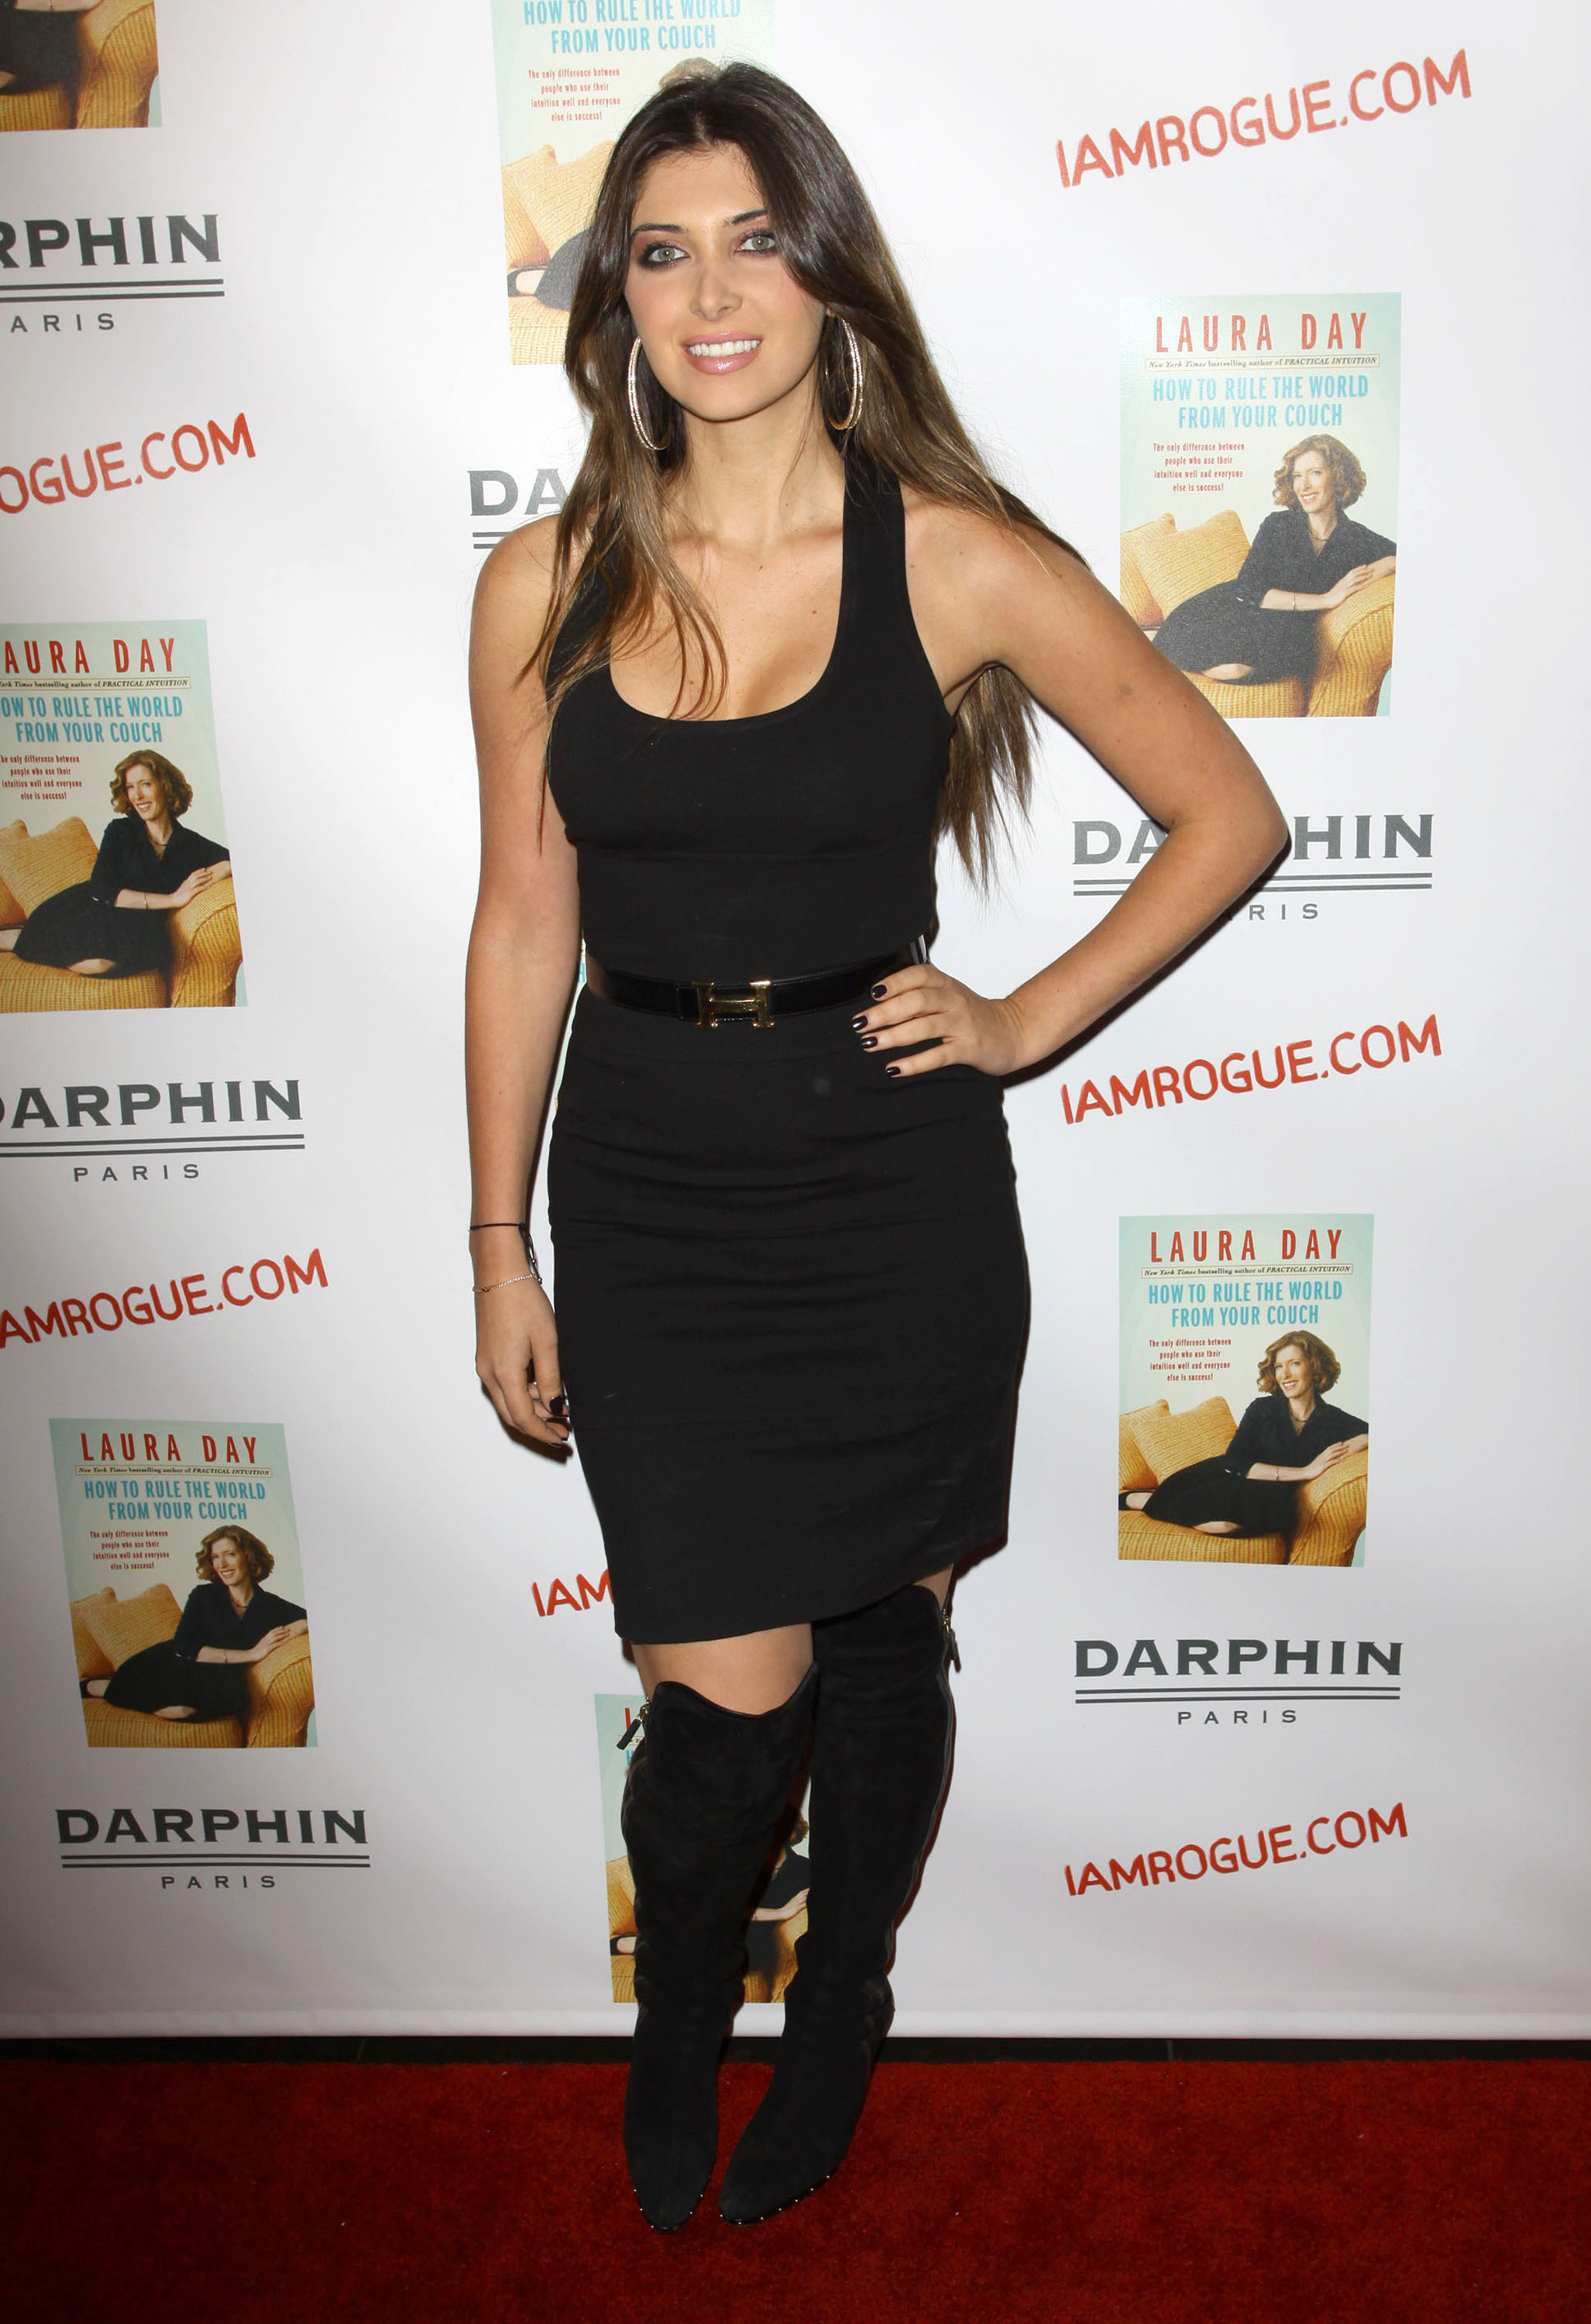 02395_celebrity-paradise.com-The_Elder-Brittny_Gastineau_2009-10-19_-_Book_Party_For_Laura_Day_339_122_195lo.jpg